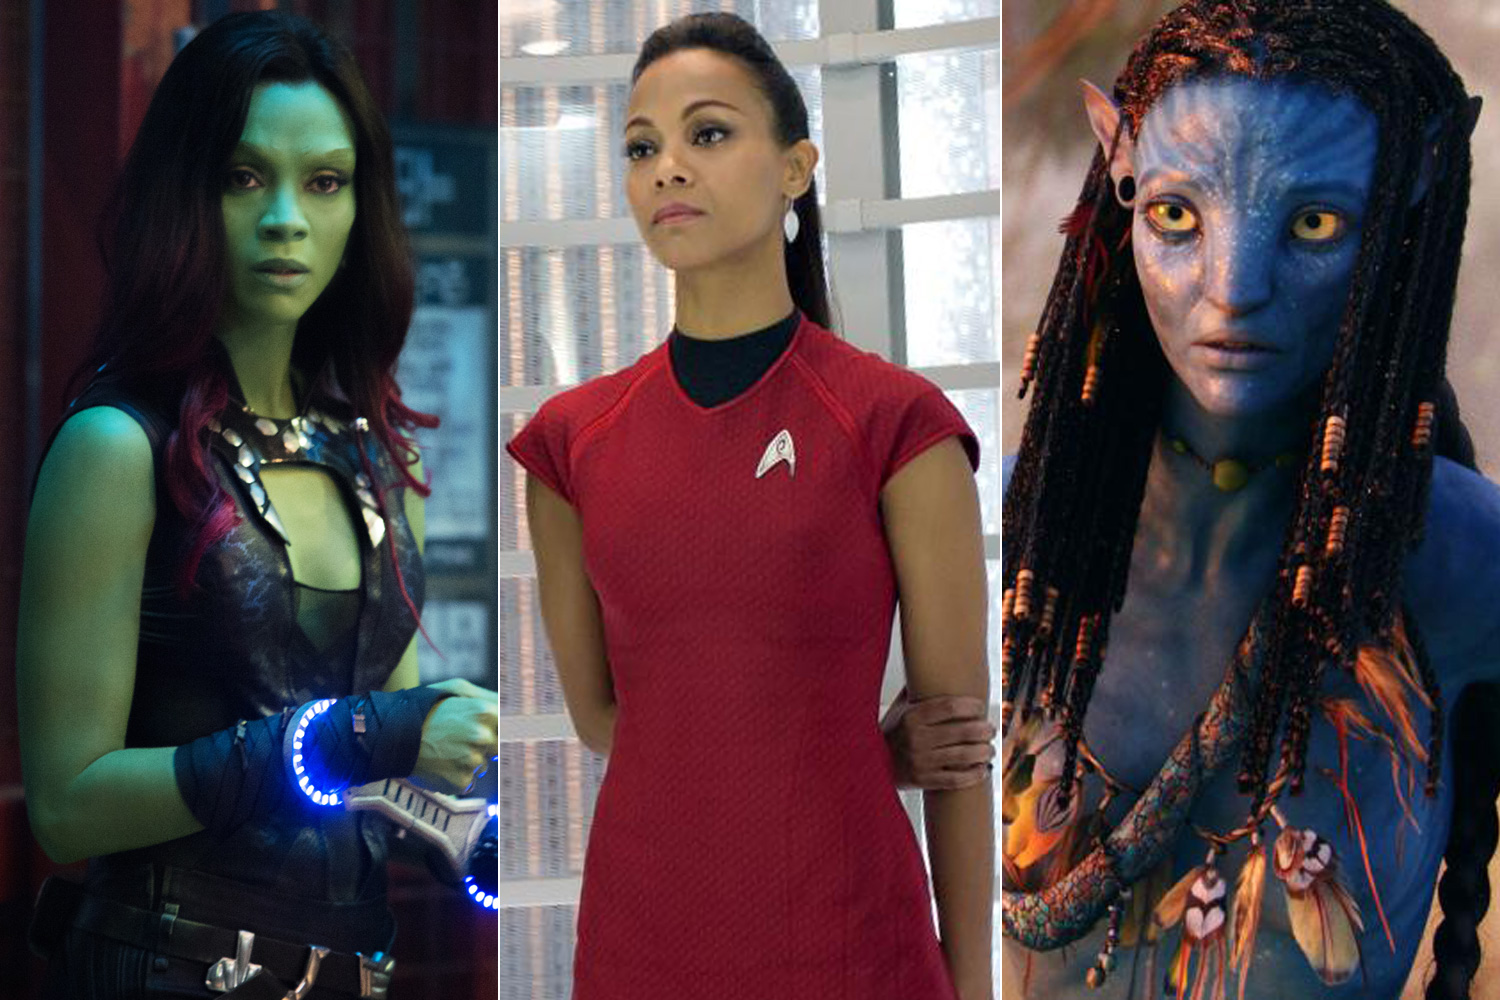 Guardians Of The Galaxy Star Trek And Avatar Zoe Saldana